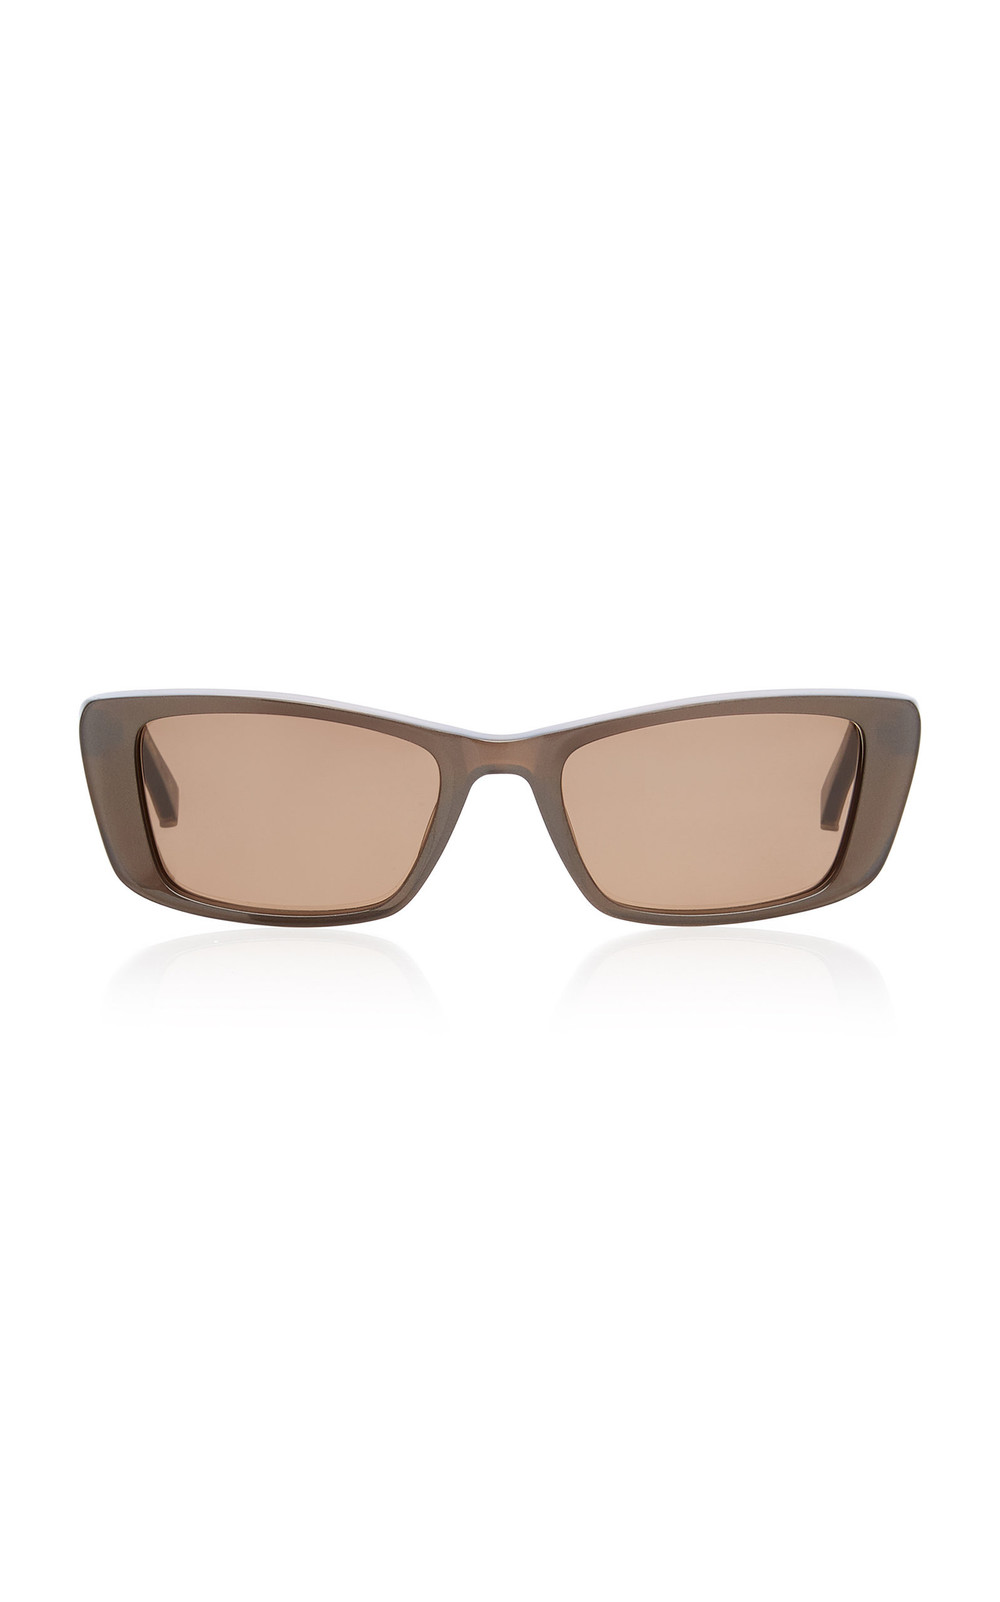 Kate Young Ines Square-Frame Acetate Sunglasses in brown